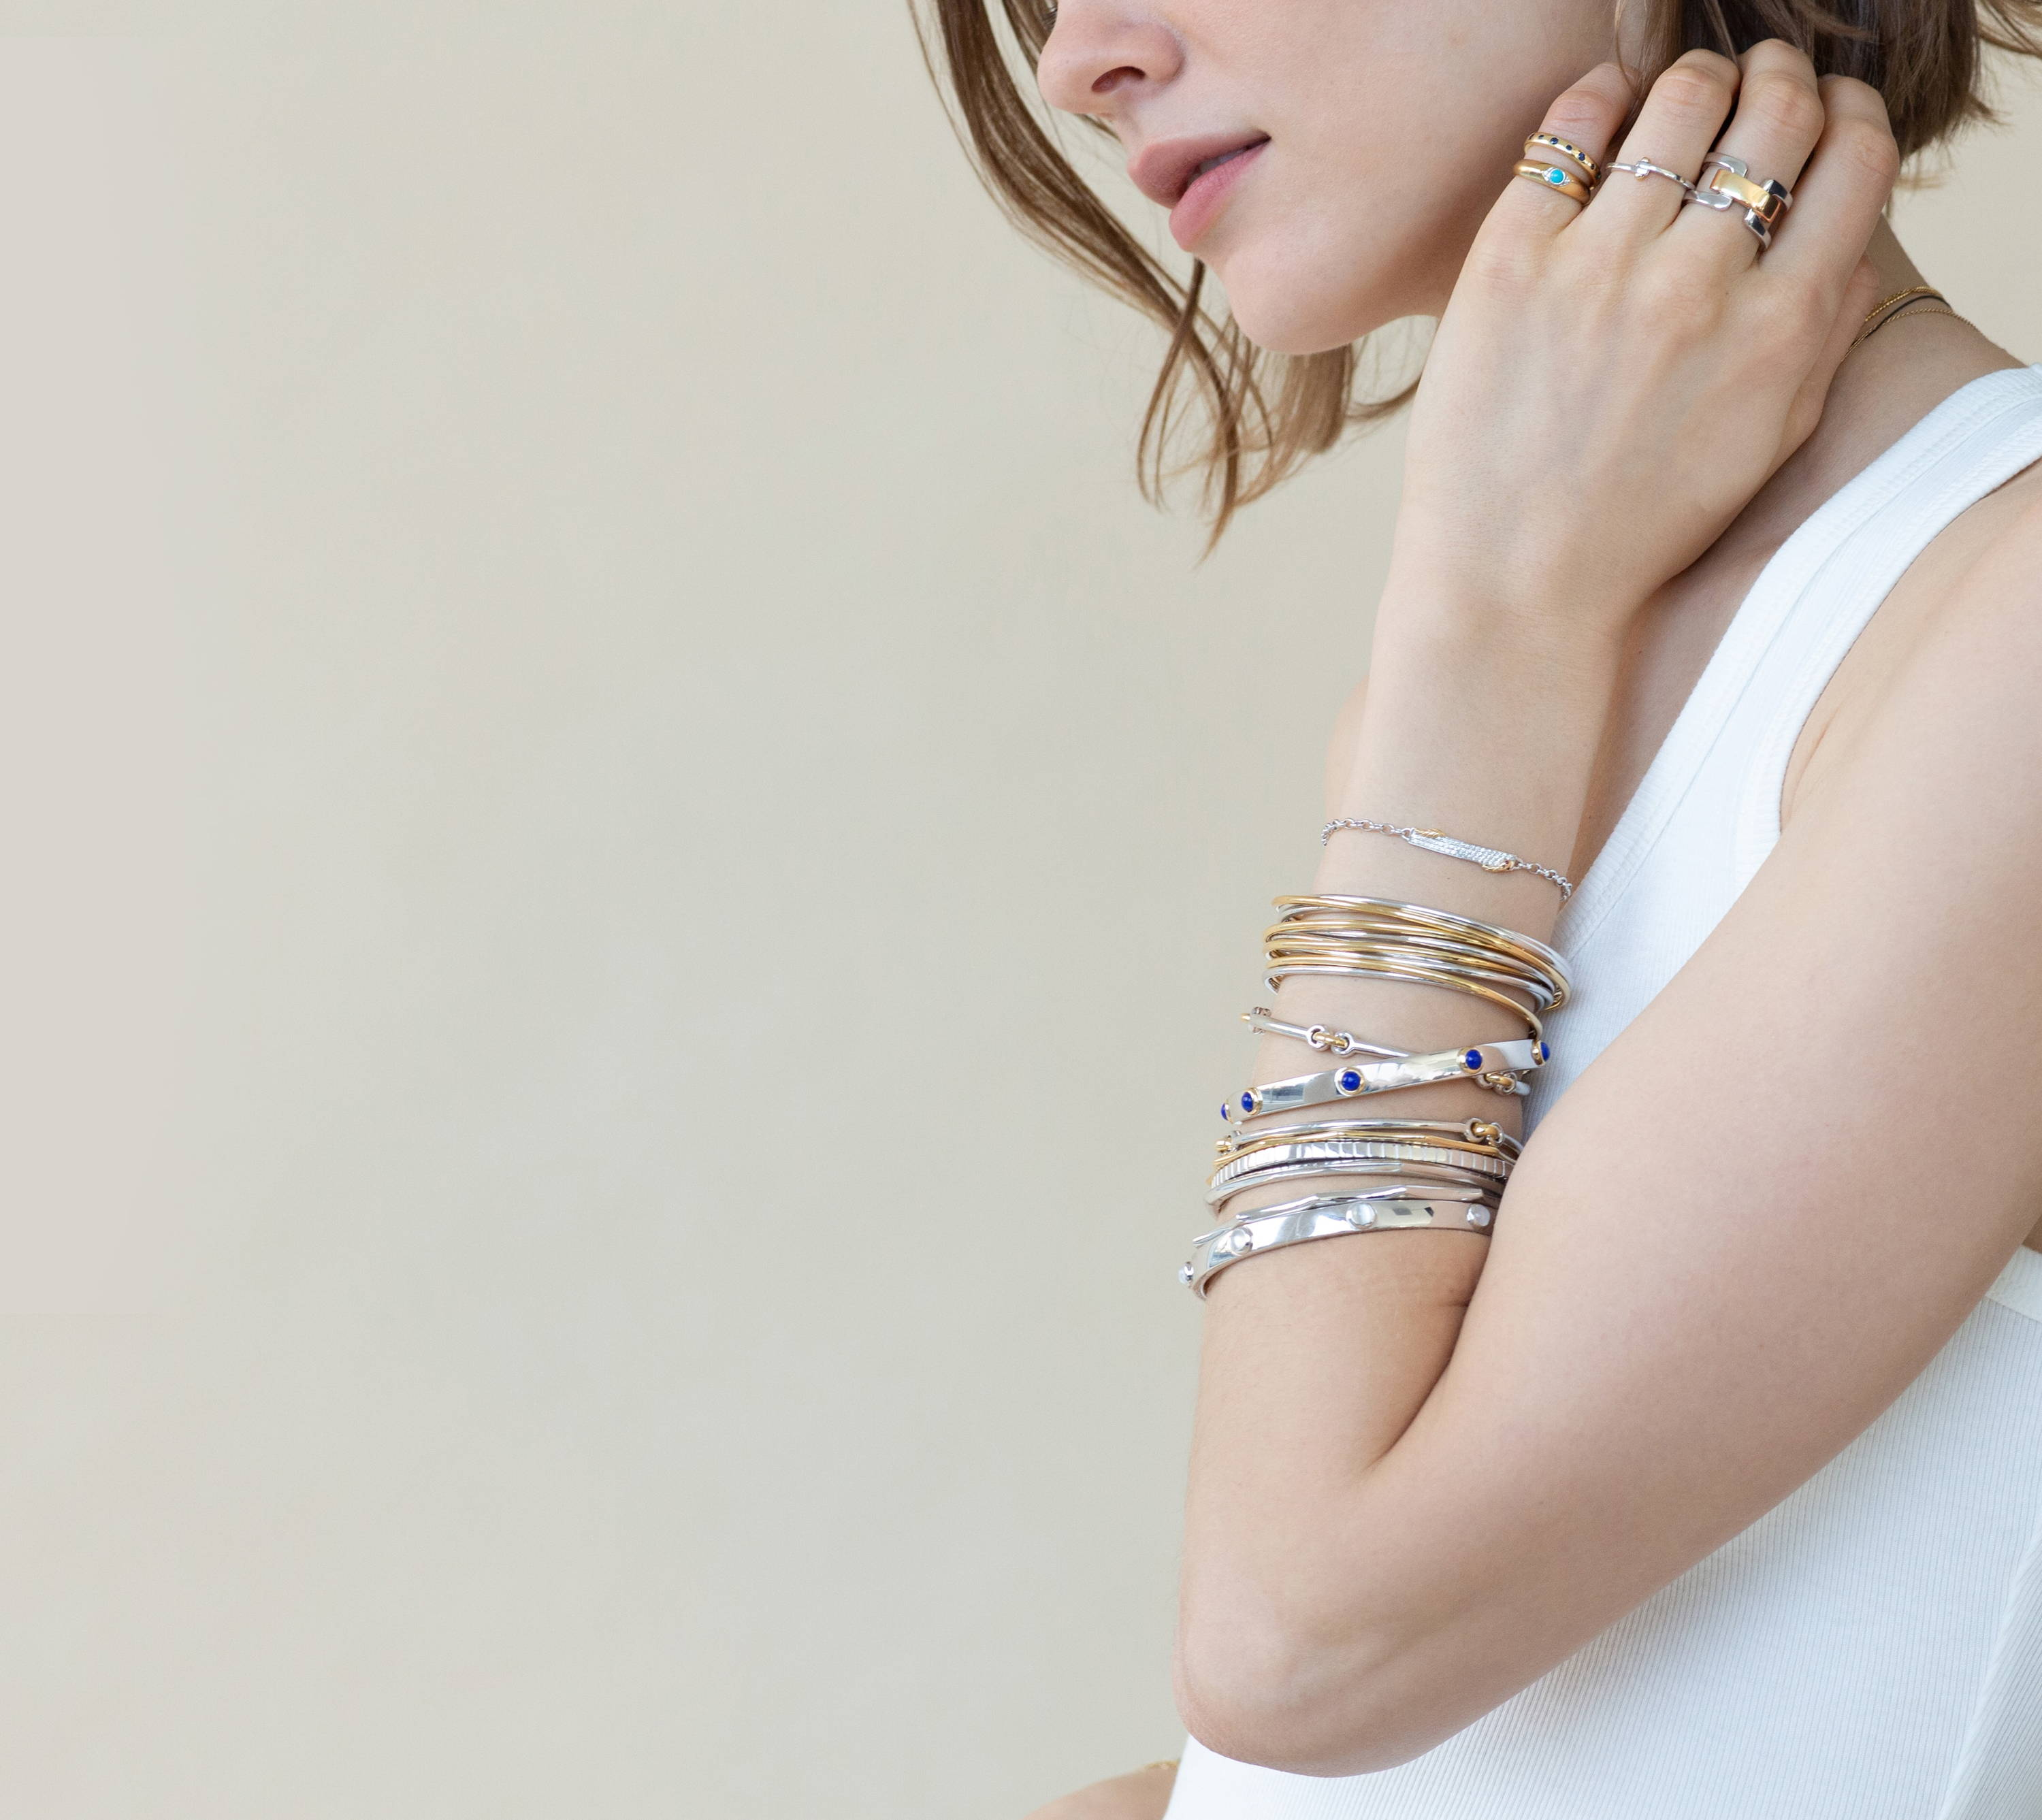 Jewelry should not just be beautiful. It should empower you.